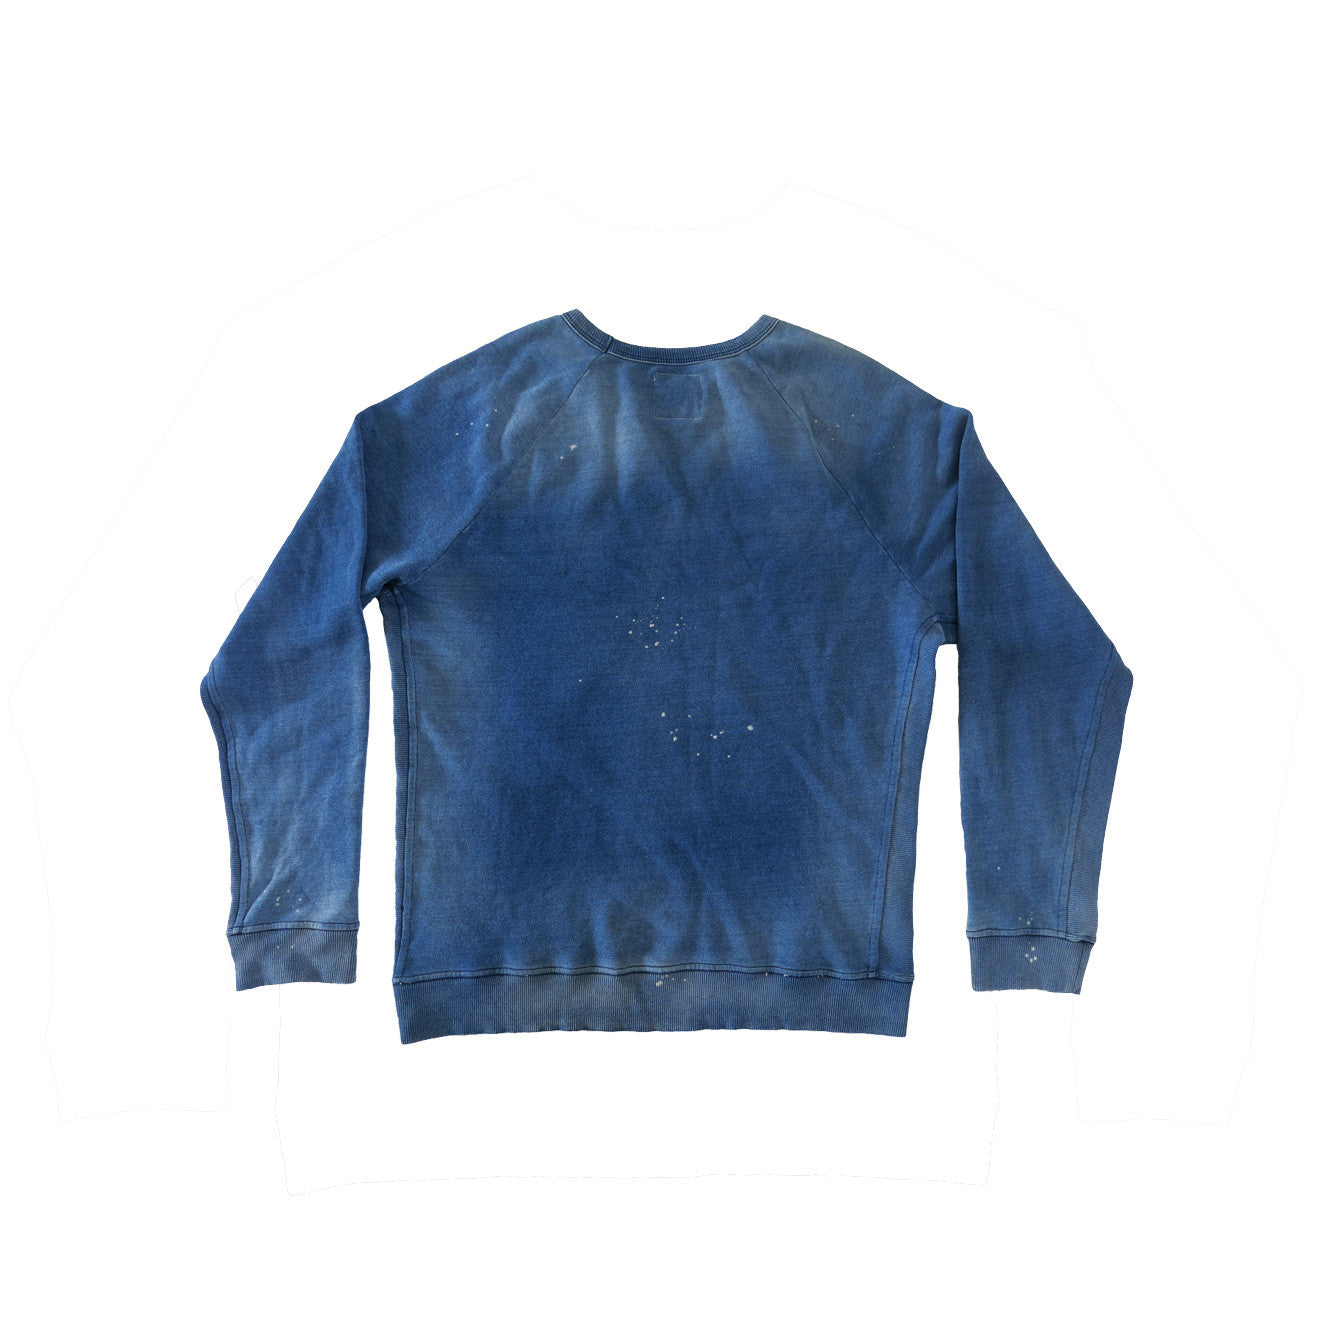 LITTLE LA PUFF PRINT MEN'S INDIGO SWEATSHIRT | Instantly Available